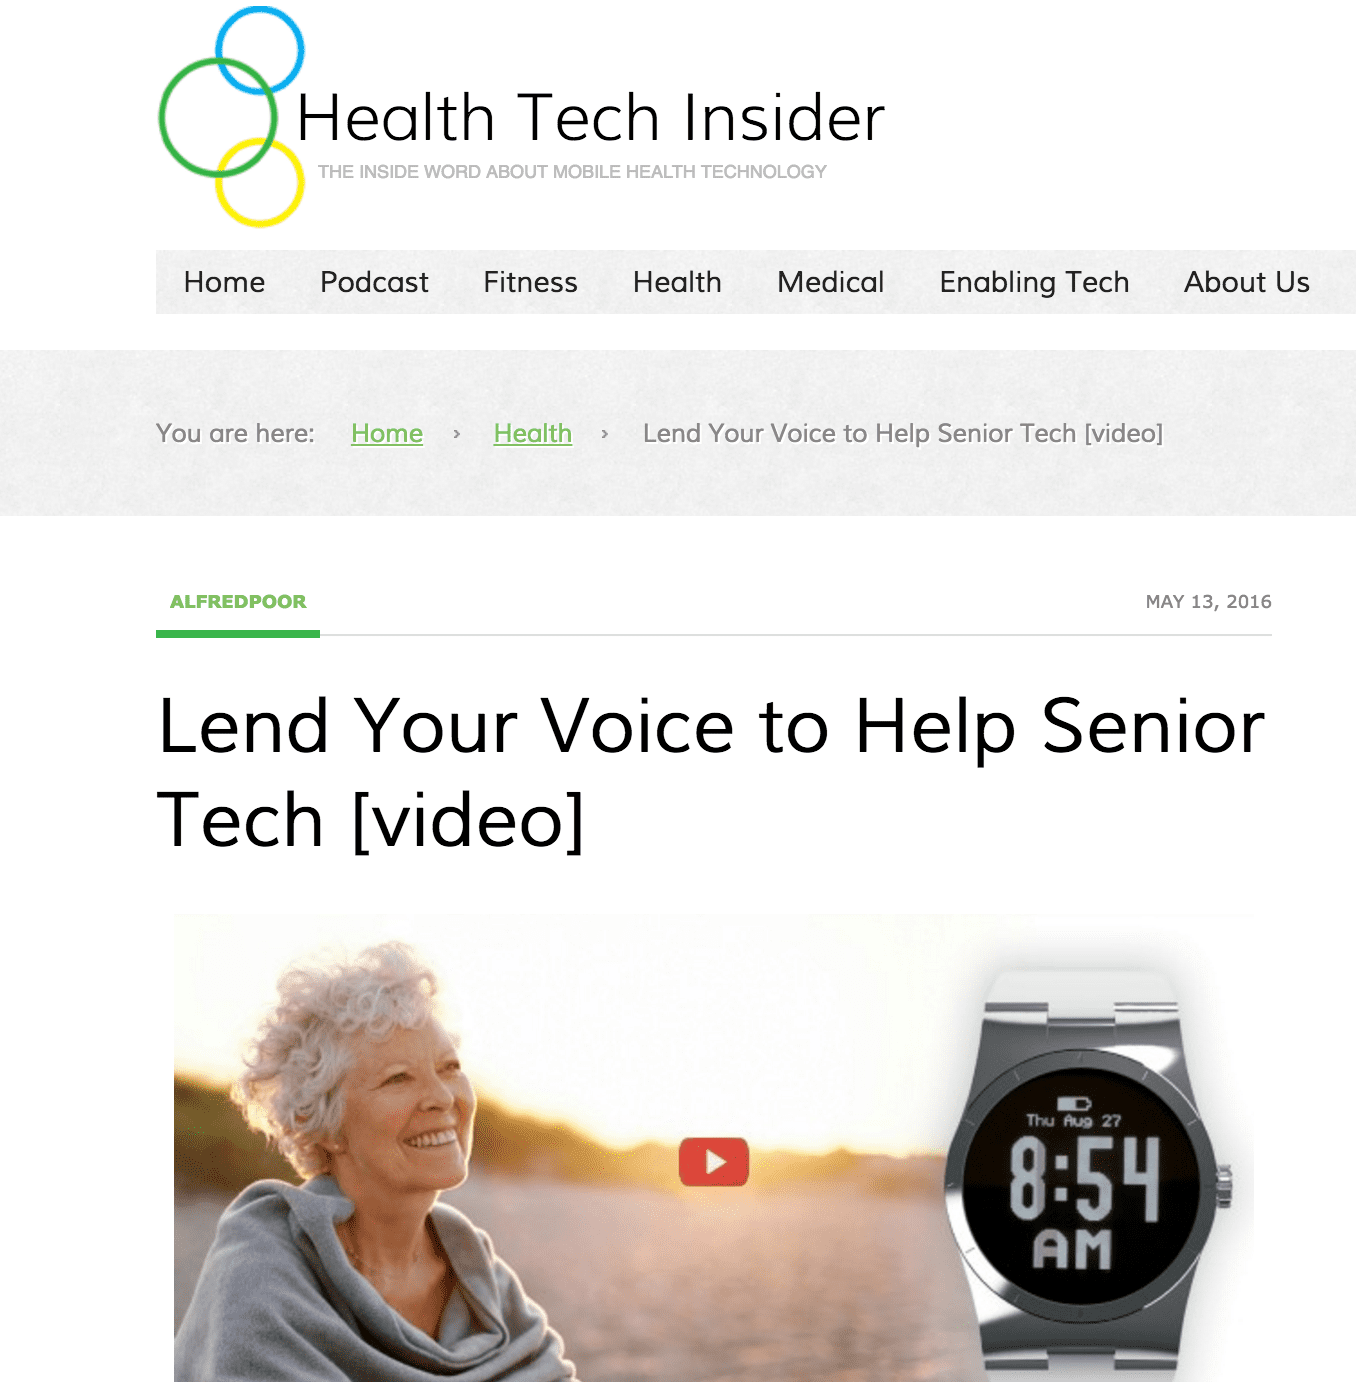 Health Tech Insider: Lend Your Voice to Help Senior Tech